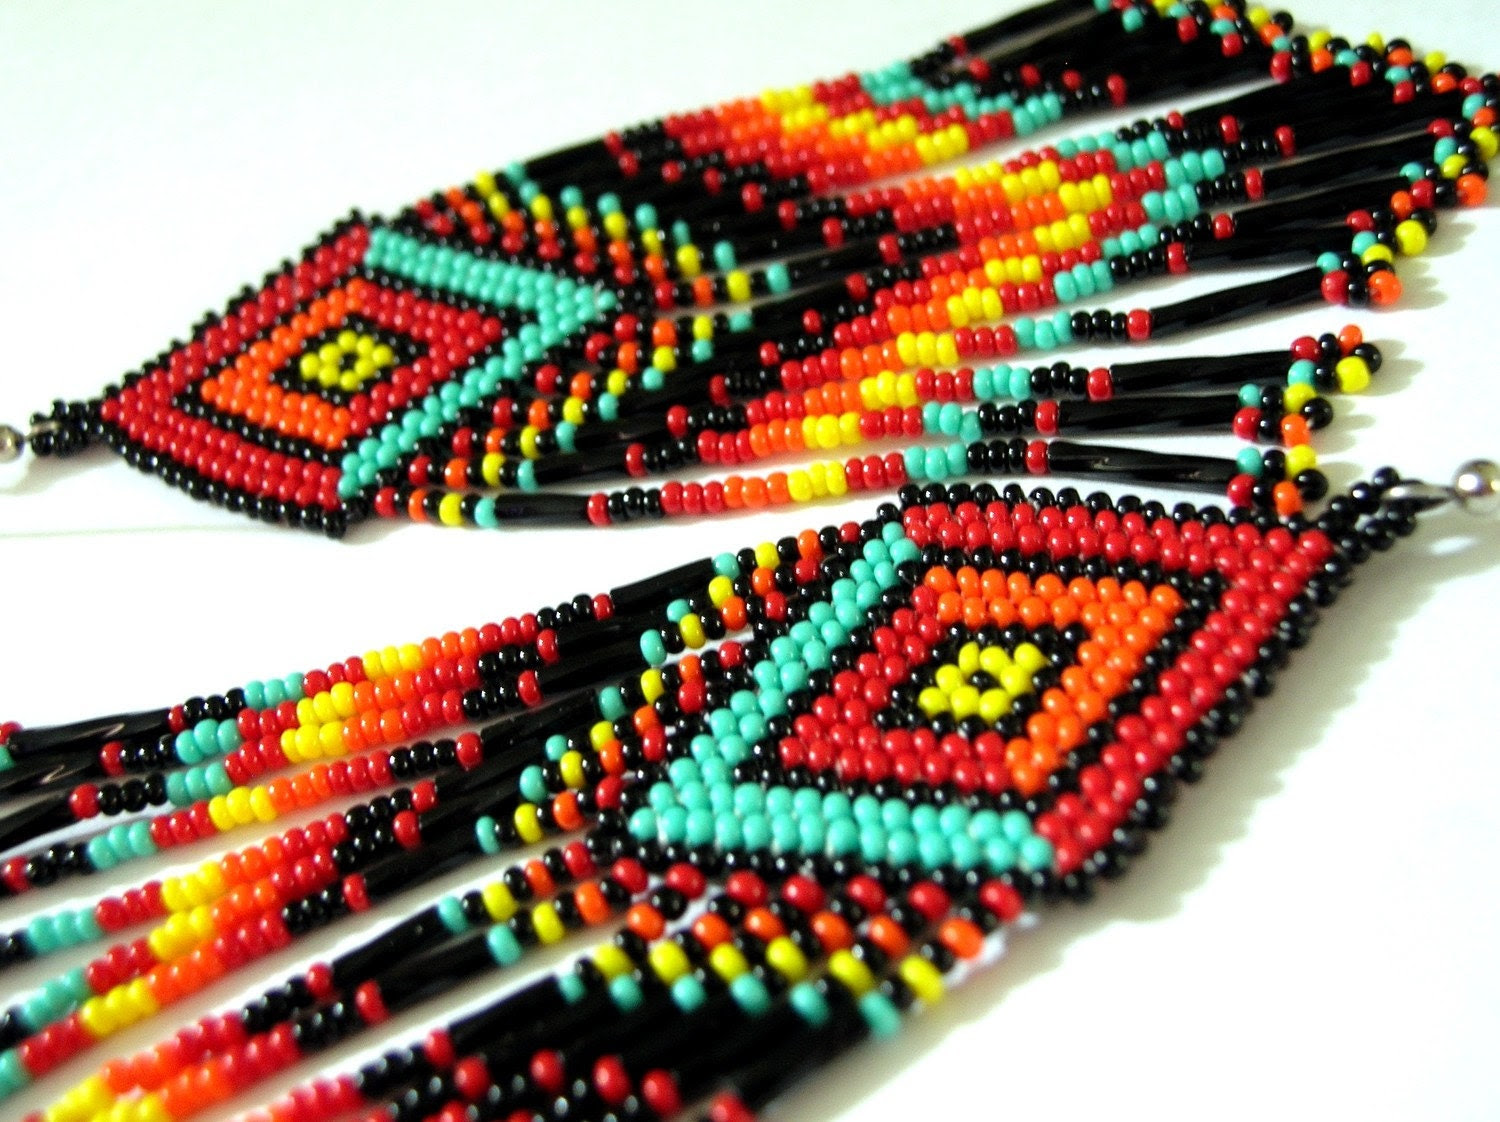 Indian Style Rainbow Multi Color Fringed/tassle Brick Stich Seed Beaded Long Earrings - fantasybeader